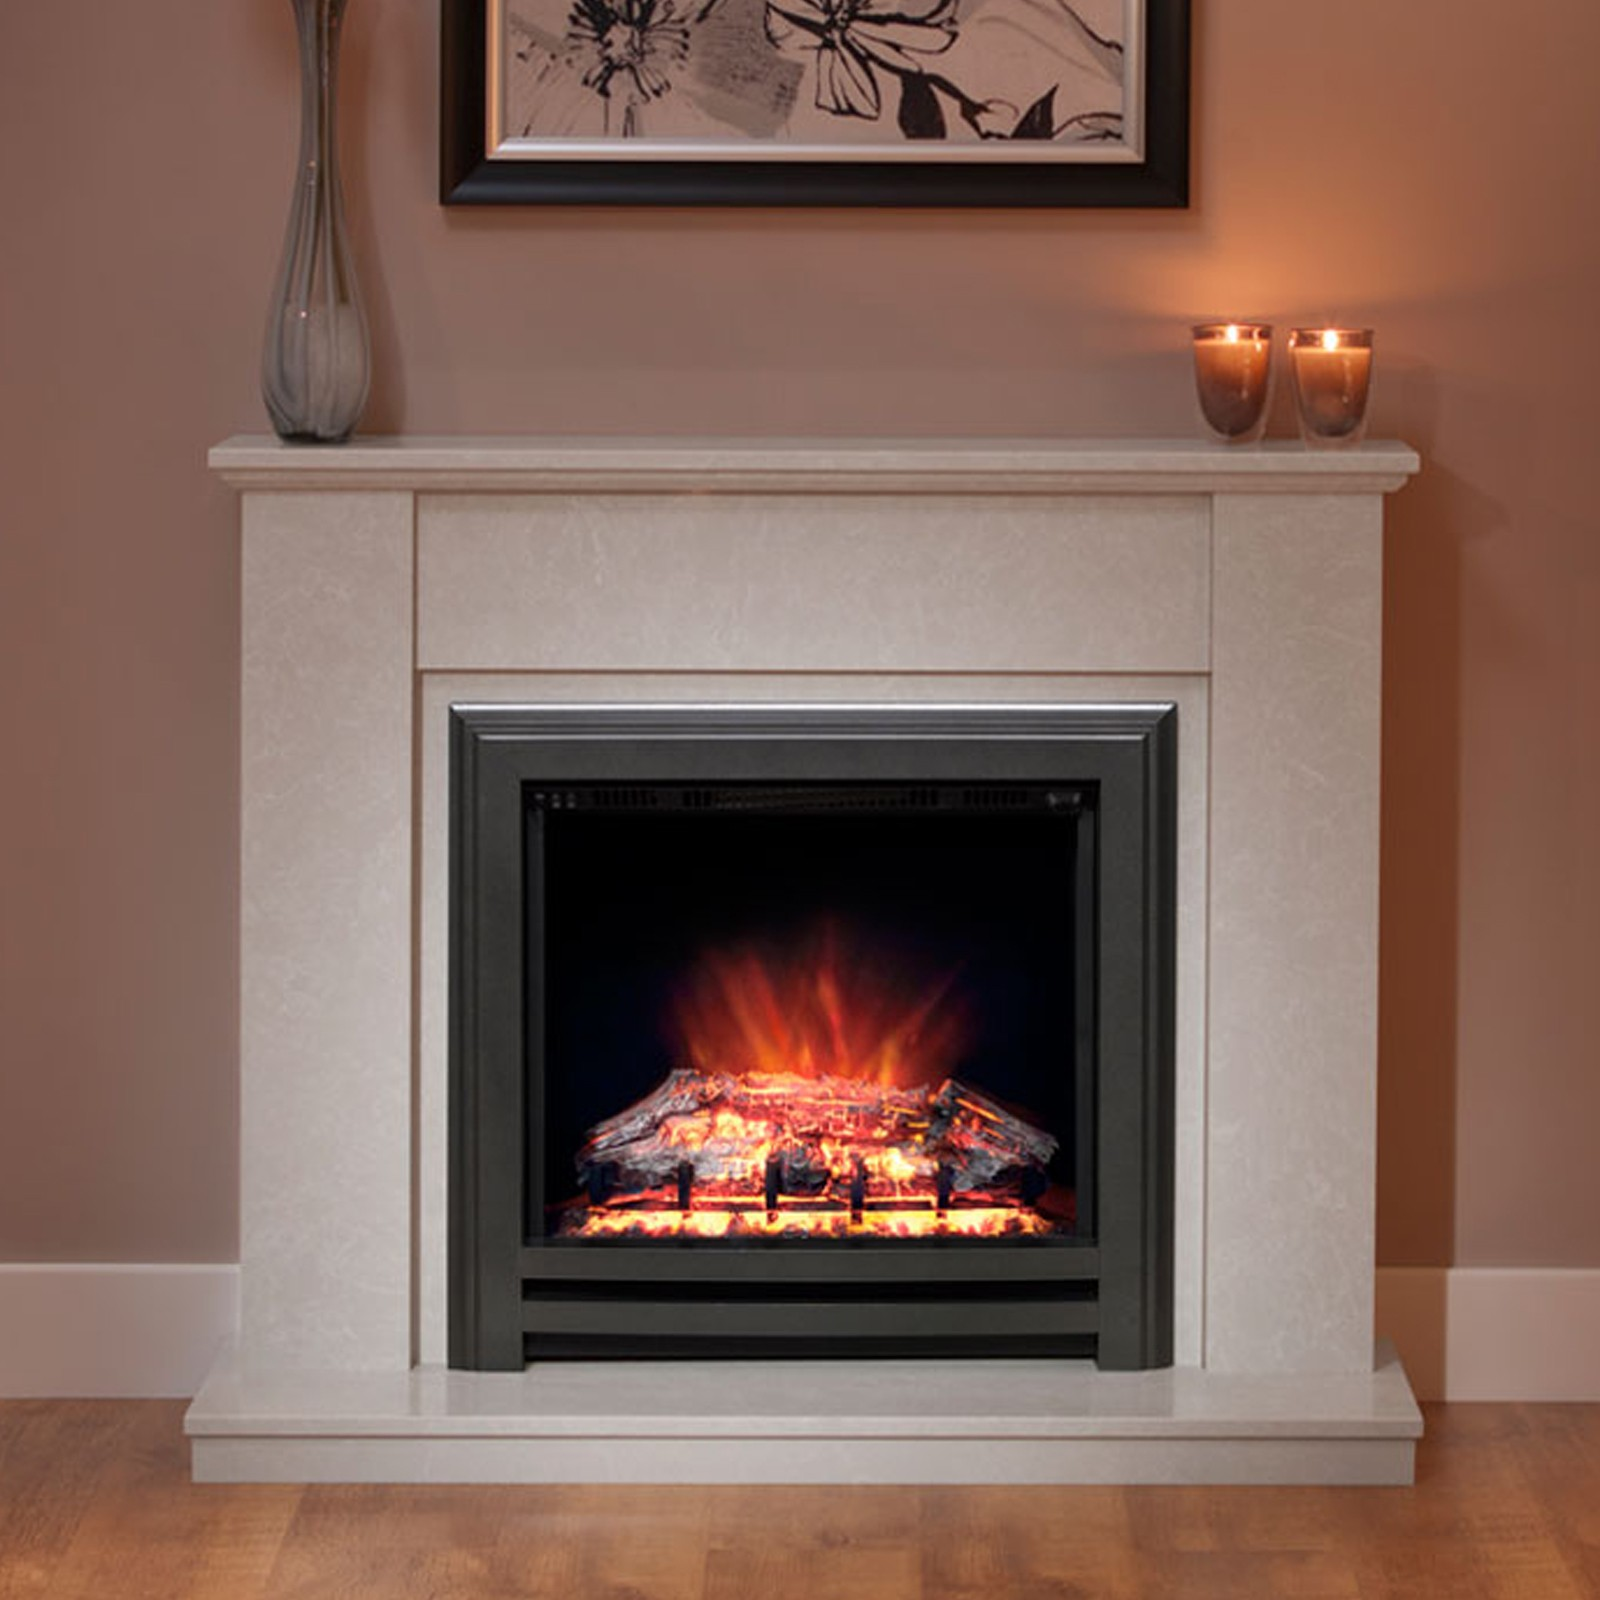 At Fireplaces4Life we will make sure your shopping experience with us is a great one and you get all the advise and help you need. Call today on 01274 871010 to find out more. product